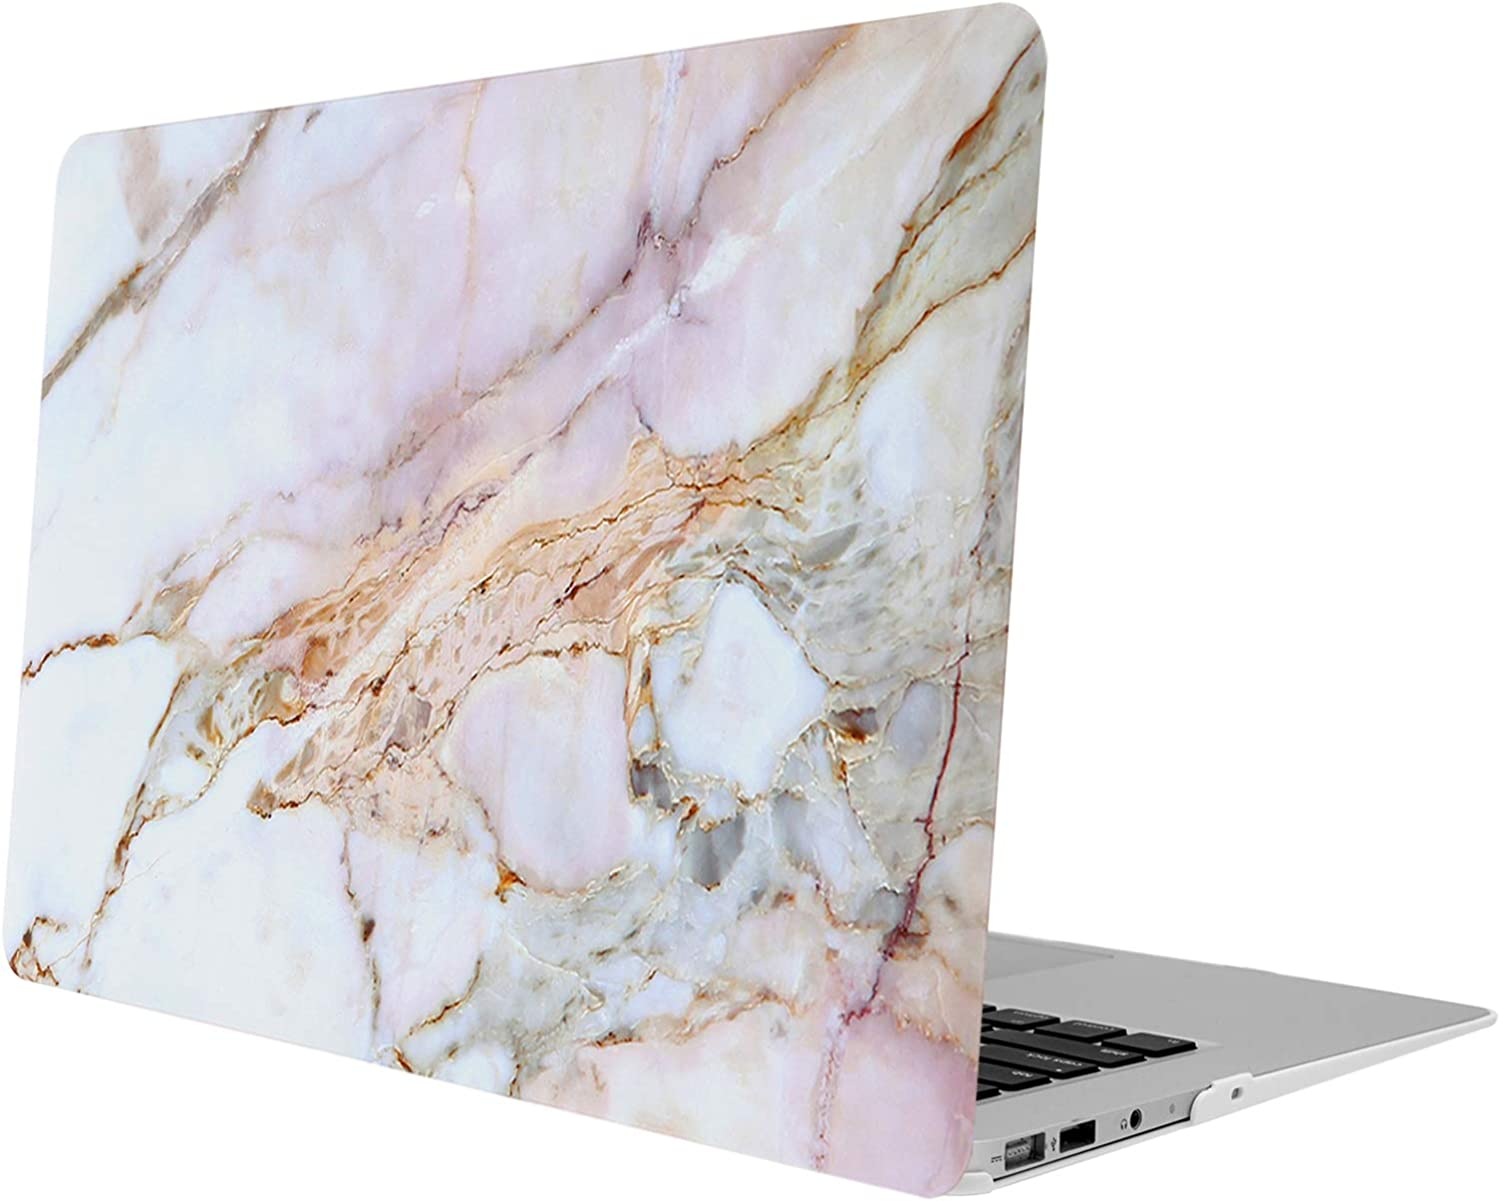 iDonzon MacBook Air 13 Case (Model: A1466 & A1369, 2010-2017 Release), Soft-Touch Matte Plastic Hard Protective Case Cover Only Compatible MacBook Air 13.3 inch - Colorful Marble